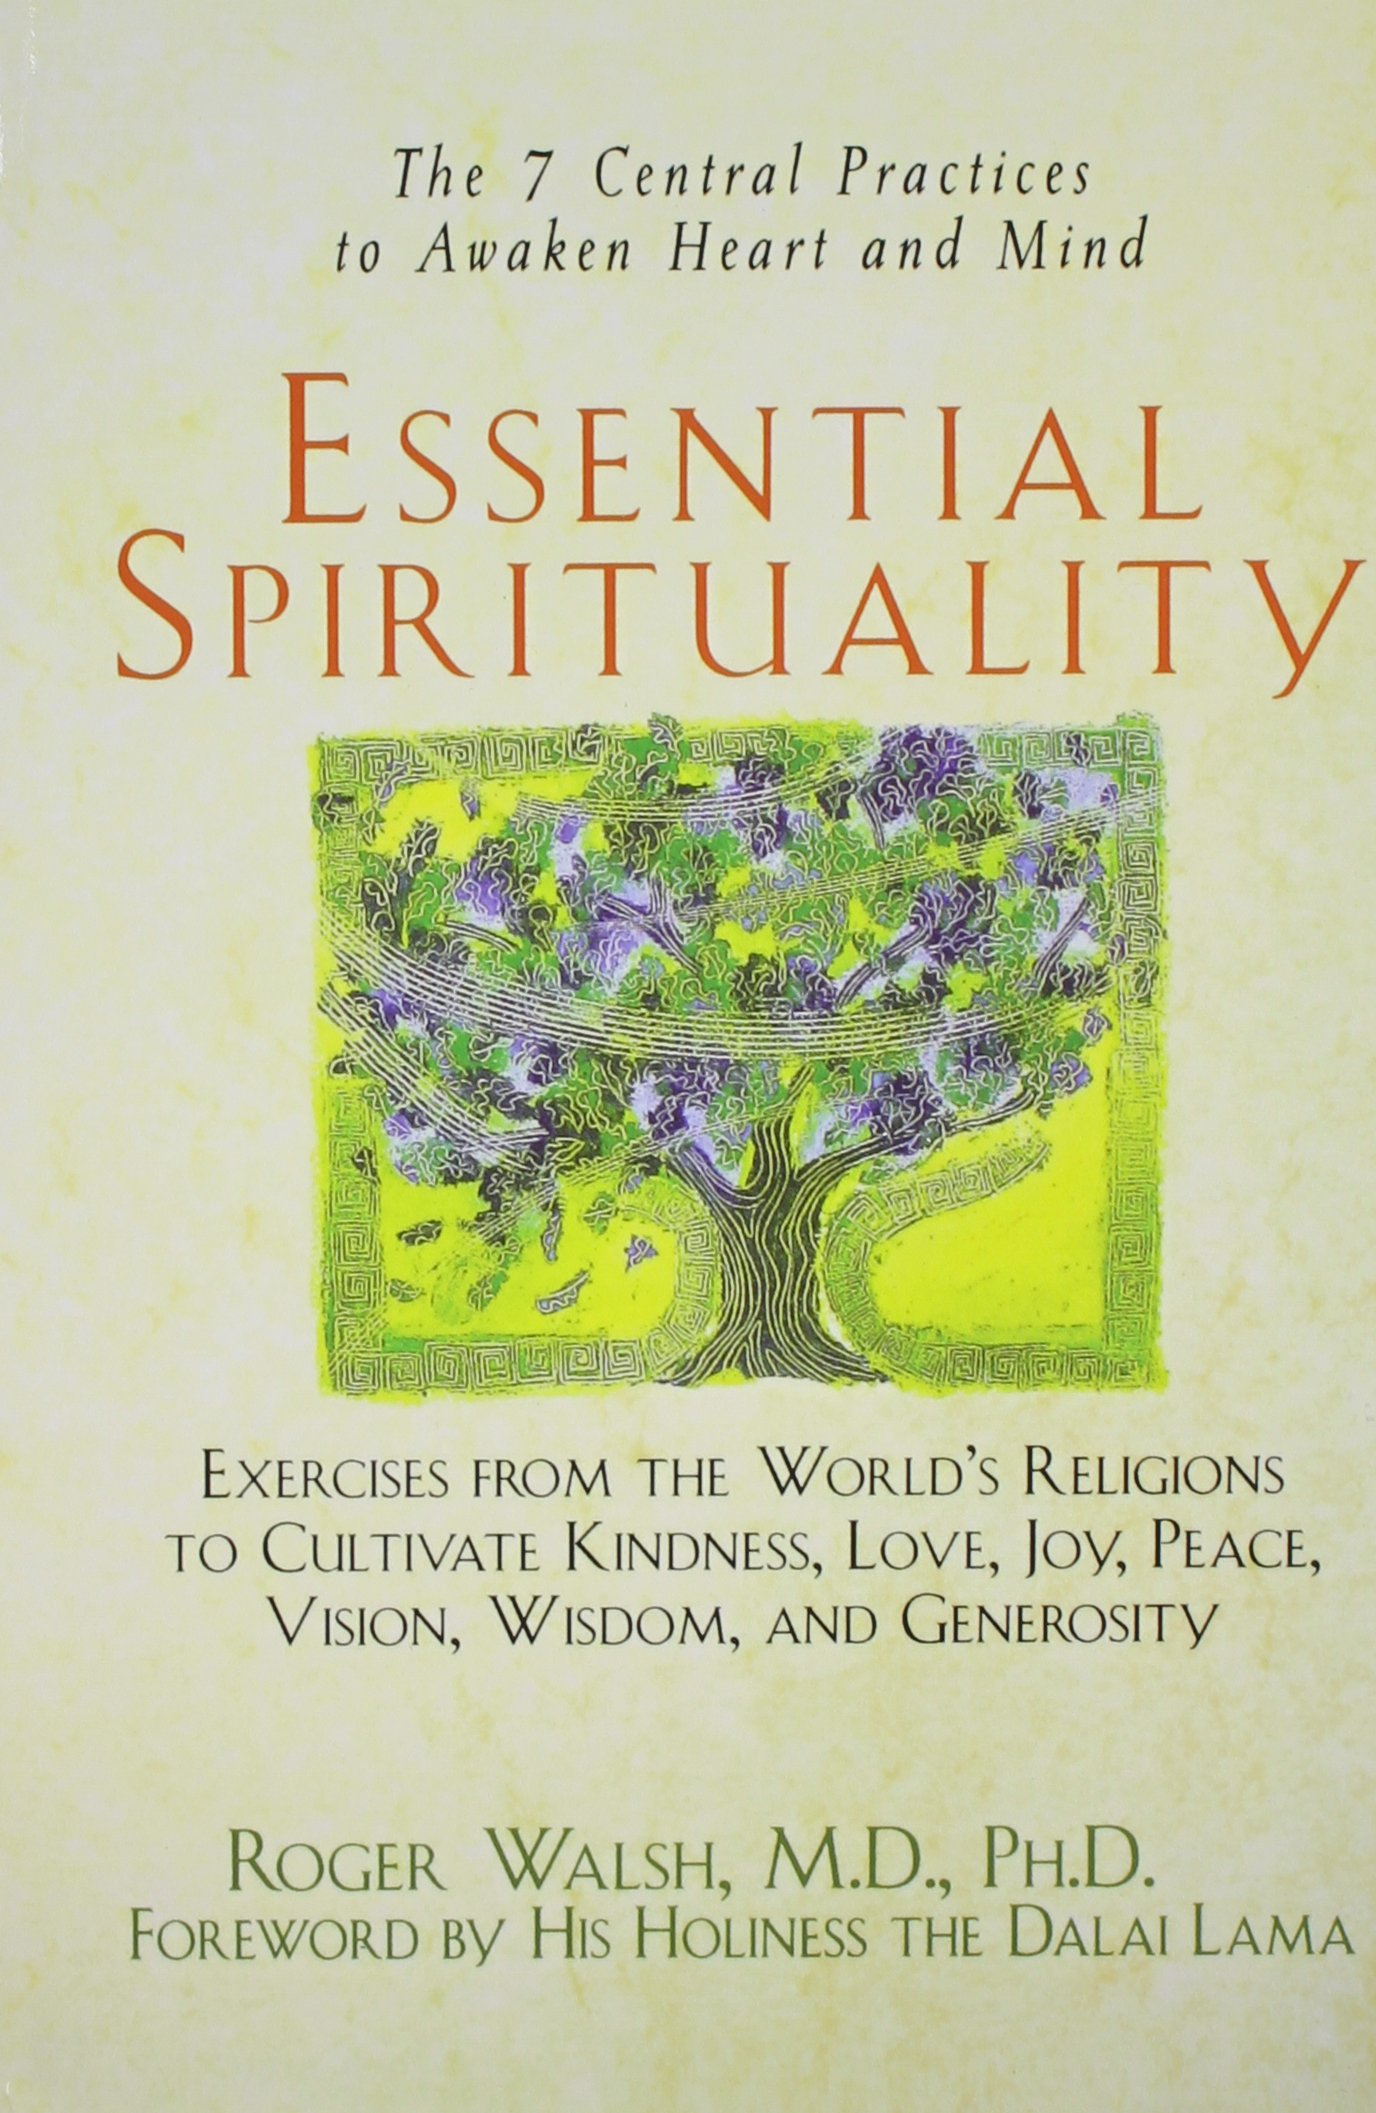 Read Online Essential Spirituality: The 7 Central Practices to Awaken Heart and Mind PDF